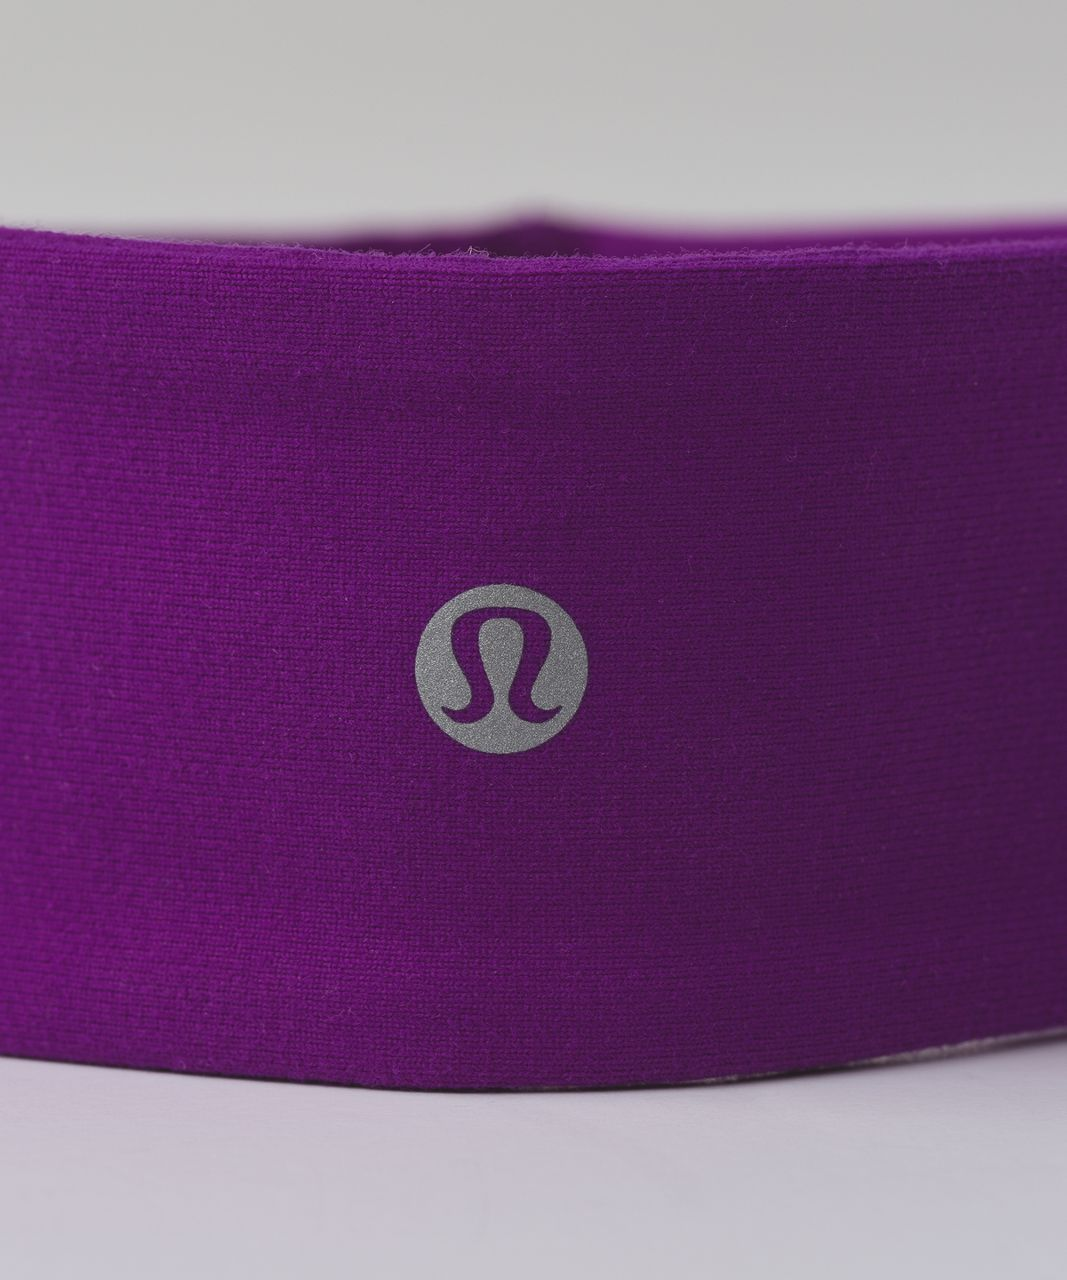 Lululemon Fly Away Tamer Headband 2.0 - Tender Violet